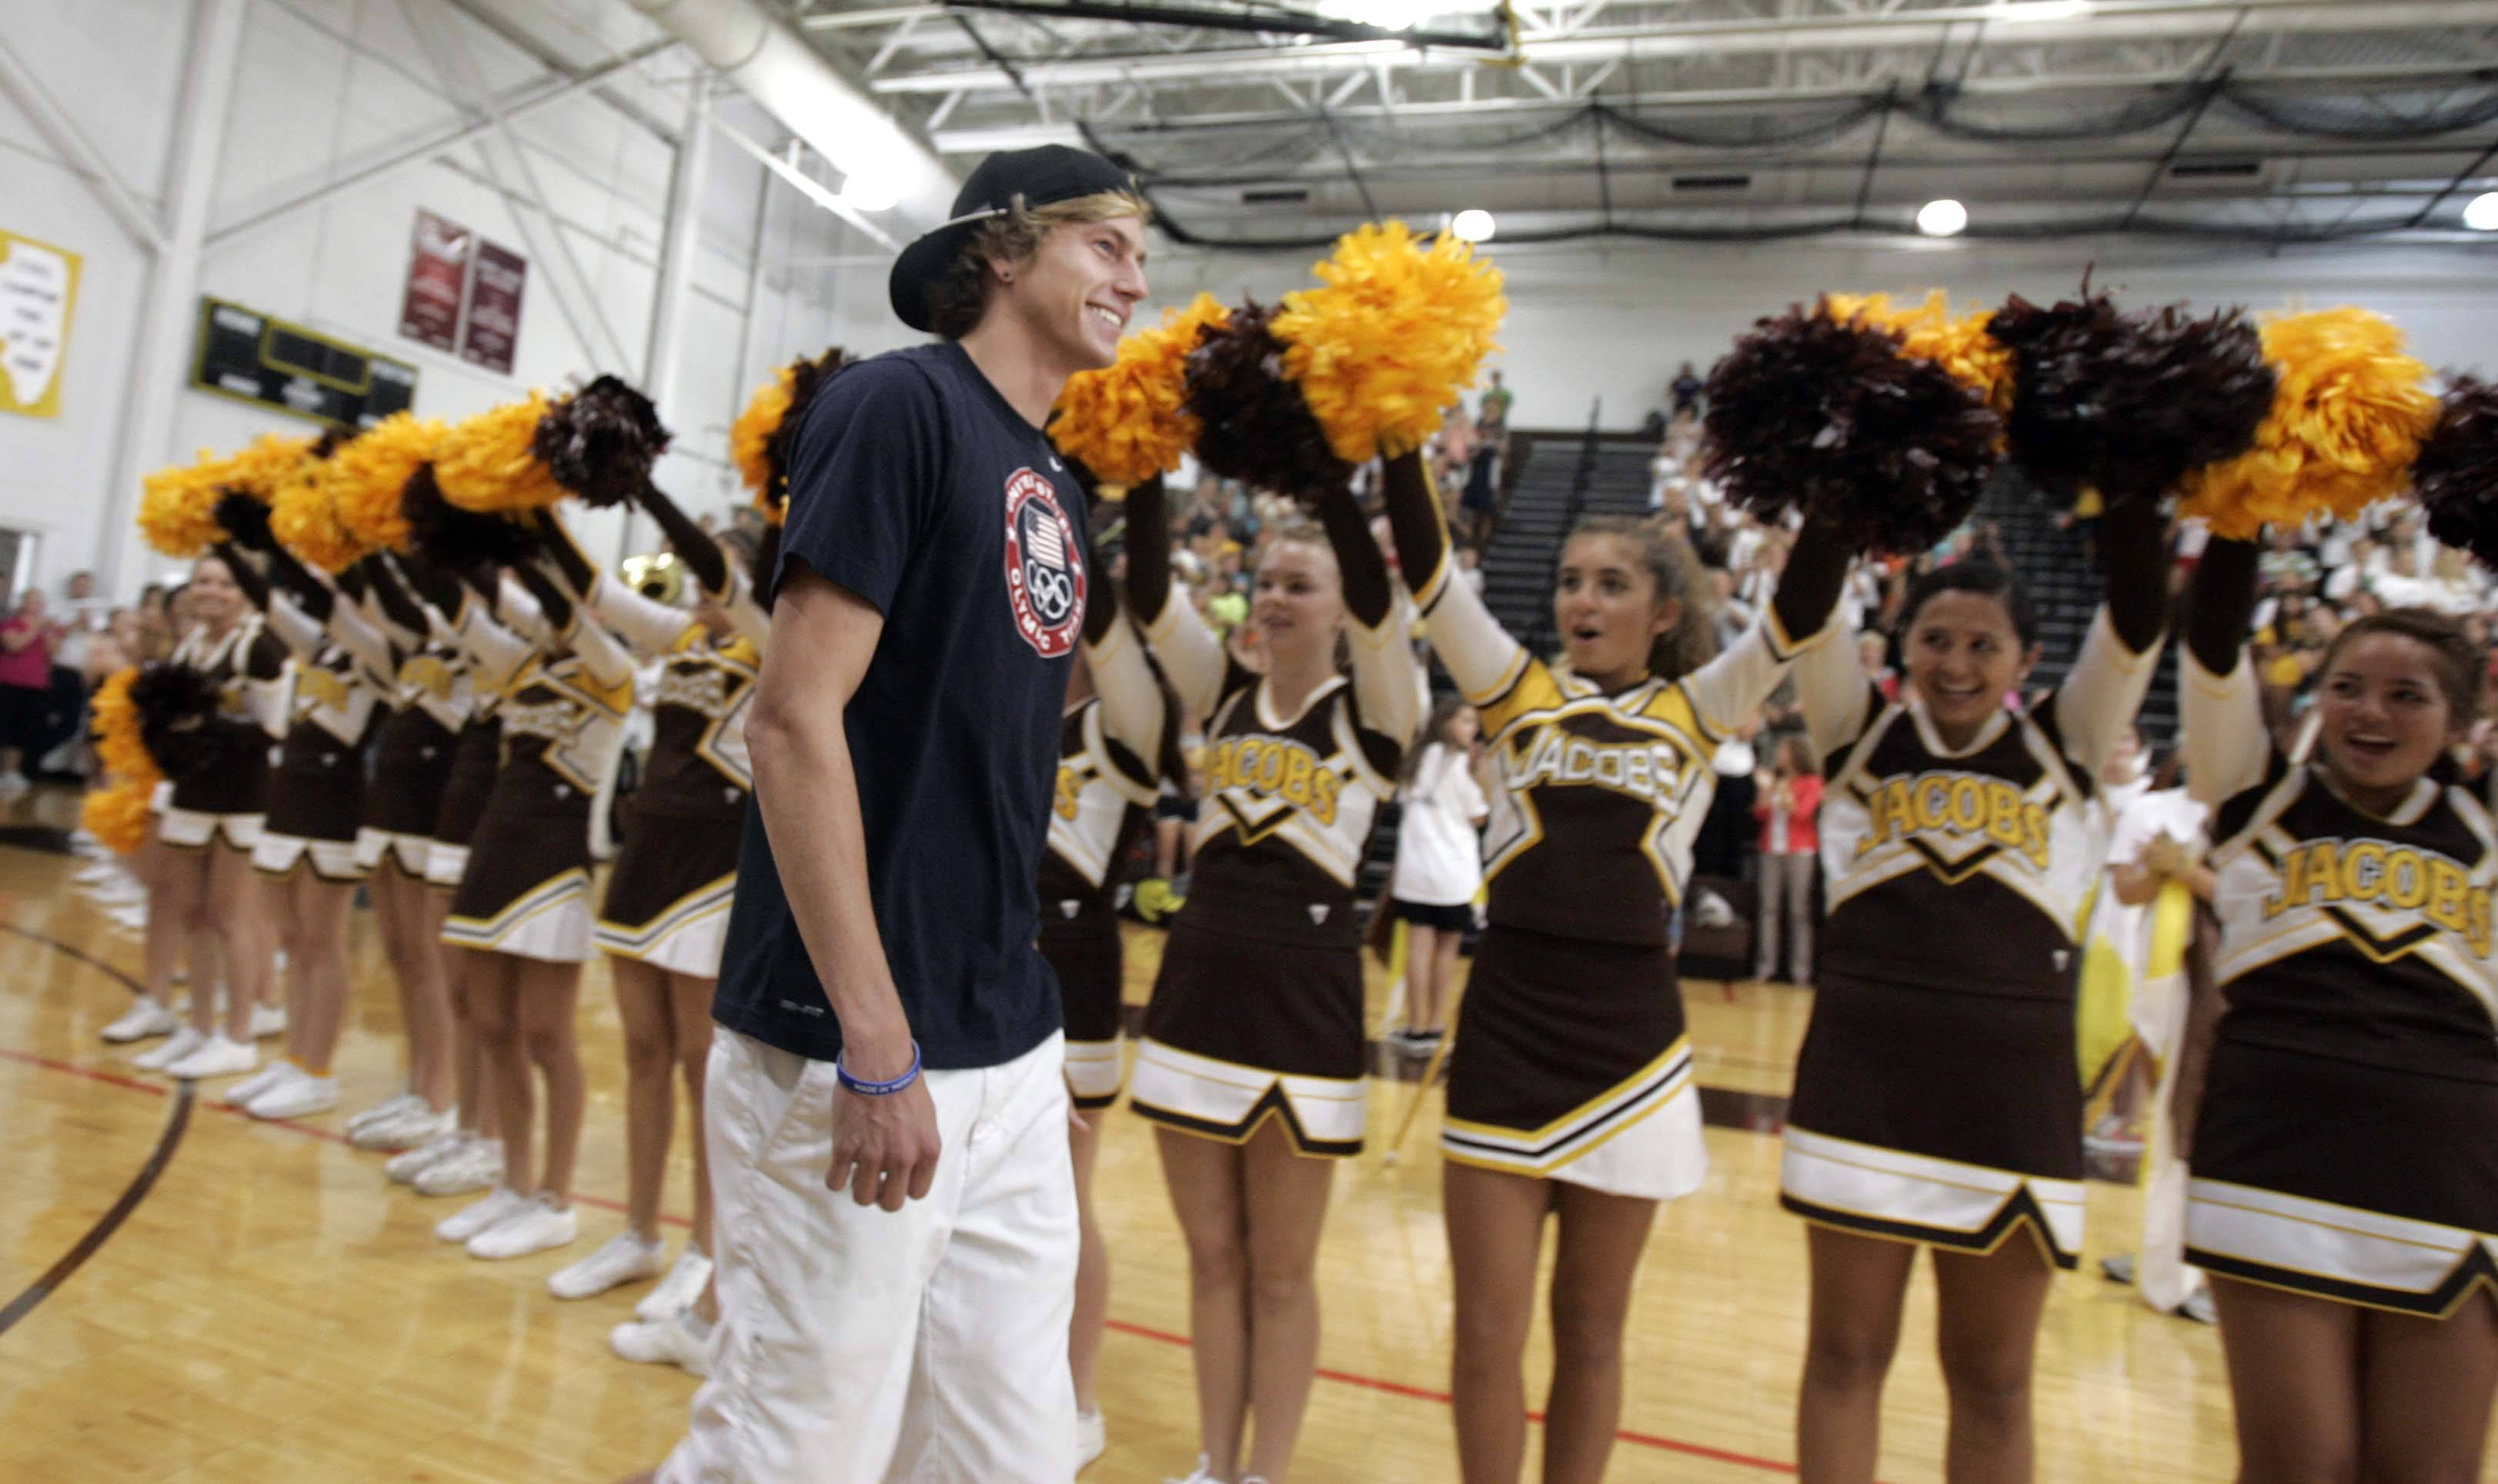 Olympian Evan Jager makes his way through the cheerleaders as he returns to H.D. Jacobs High School in Algonquin Wednesday.